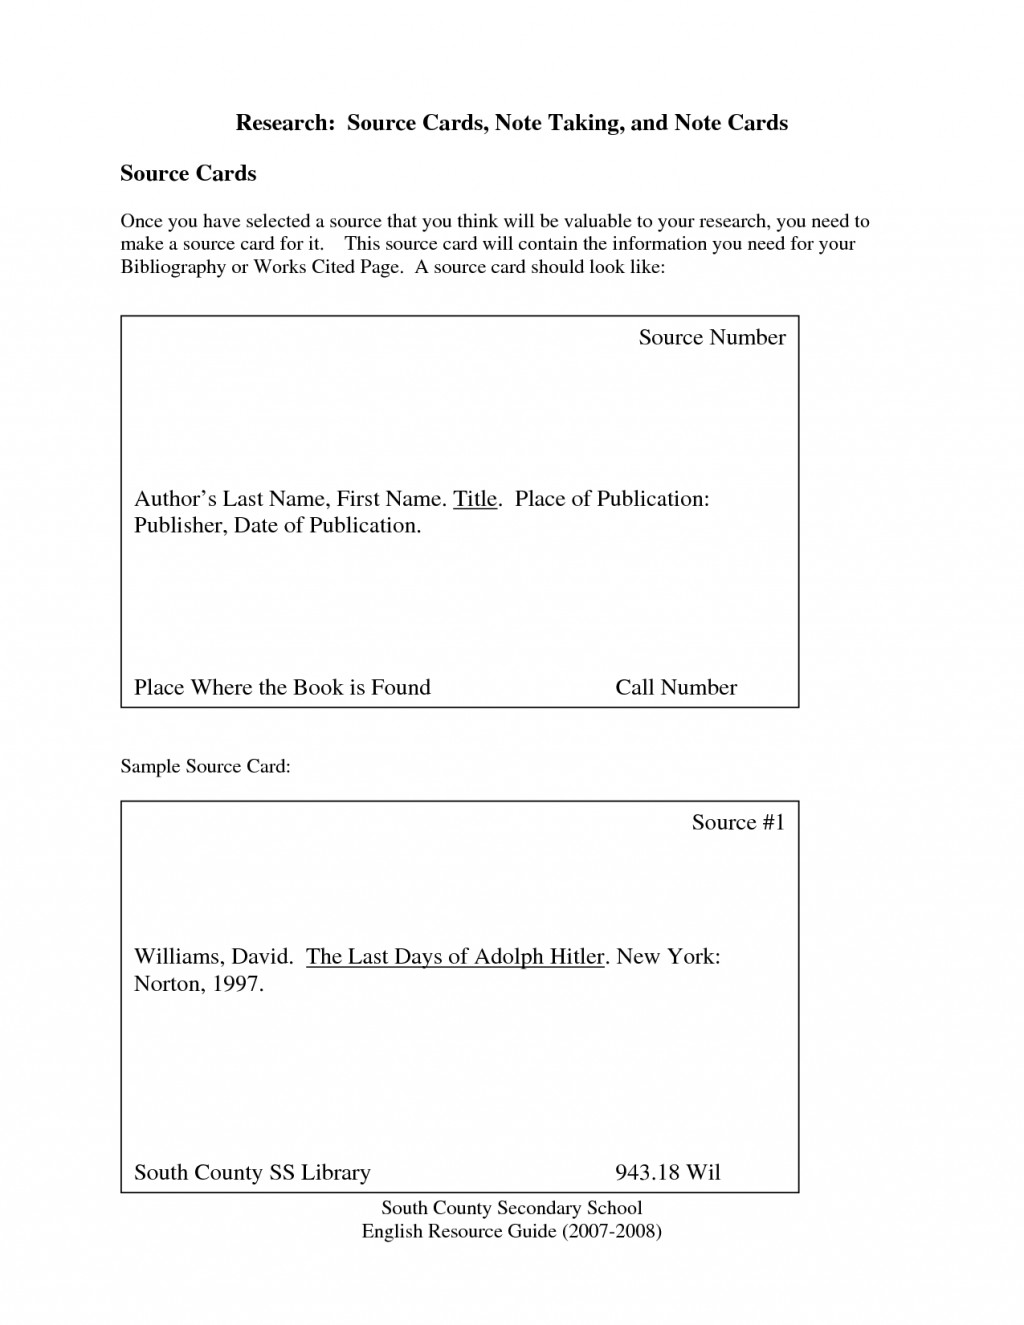 012 Research Paper Note Card Templates 442160 How To Do Notecards For Staggering A Mla Make Large